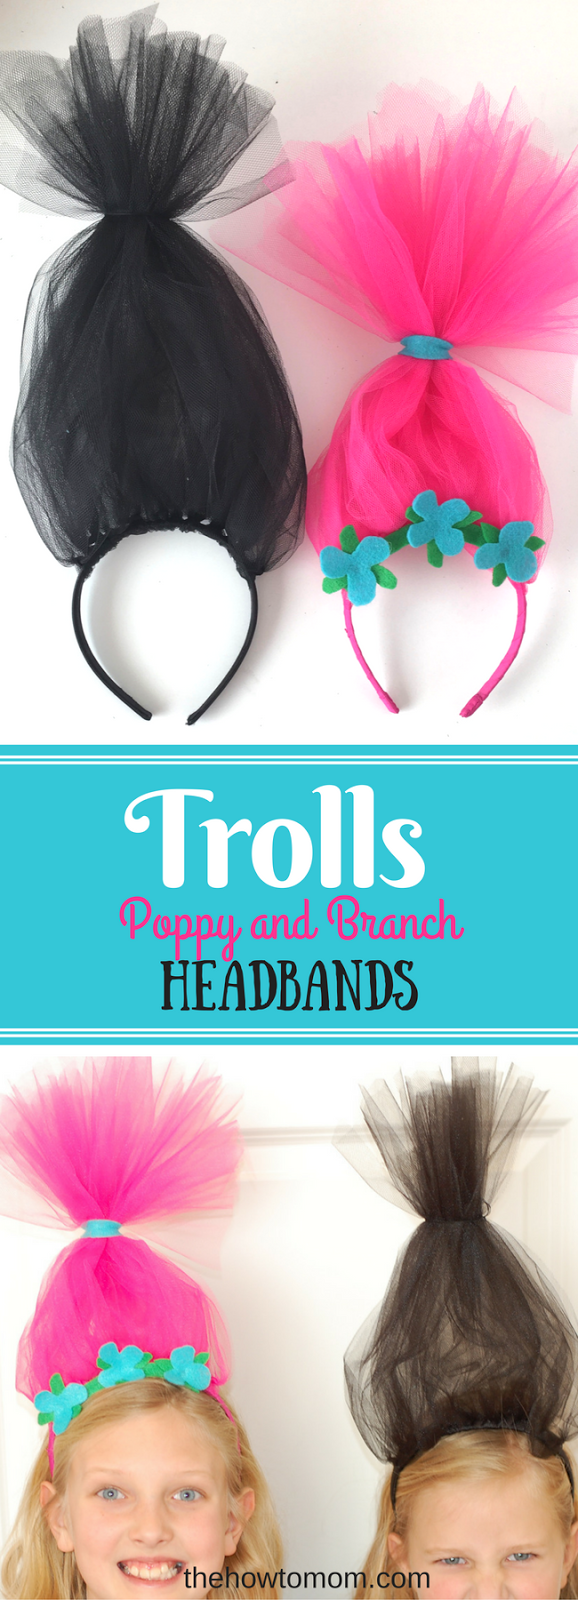 Easy trolls headband diy couple crafts super easy and for Super easy diys to do at home